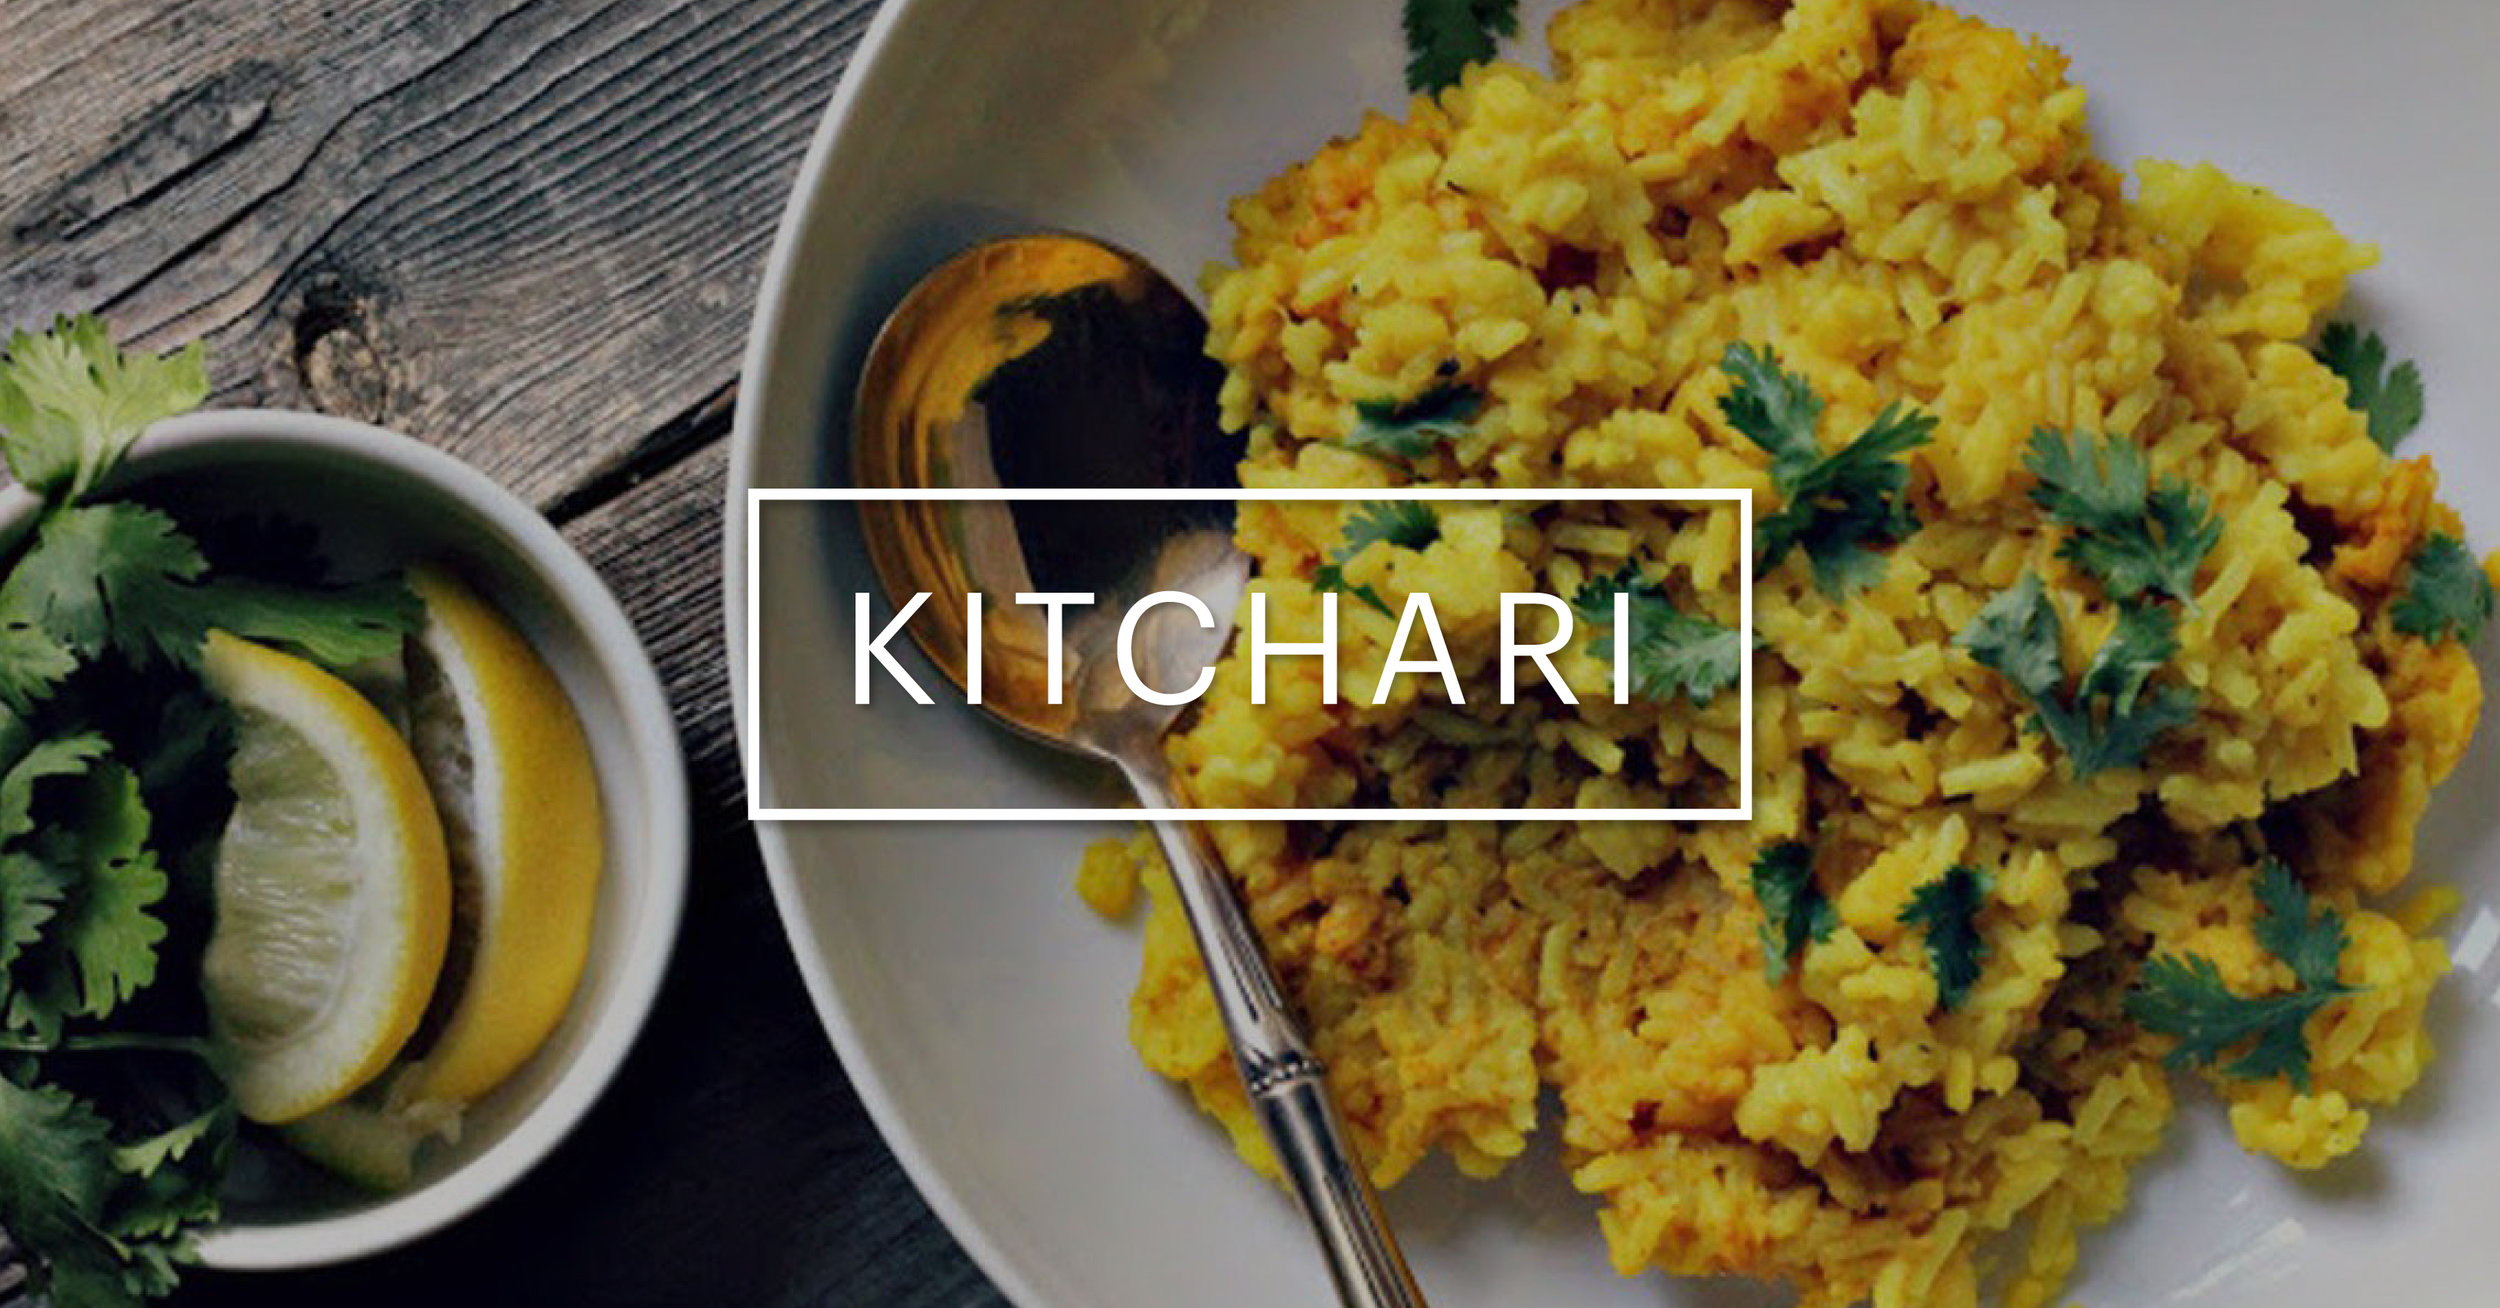 Kitchari-header.jpg